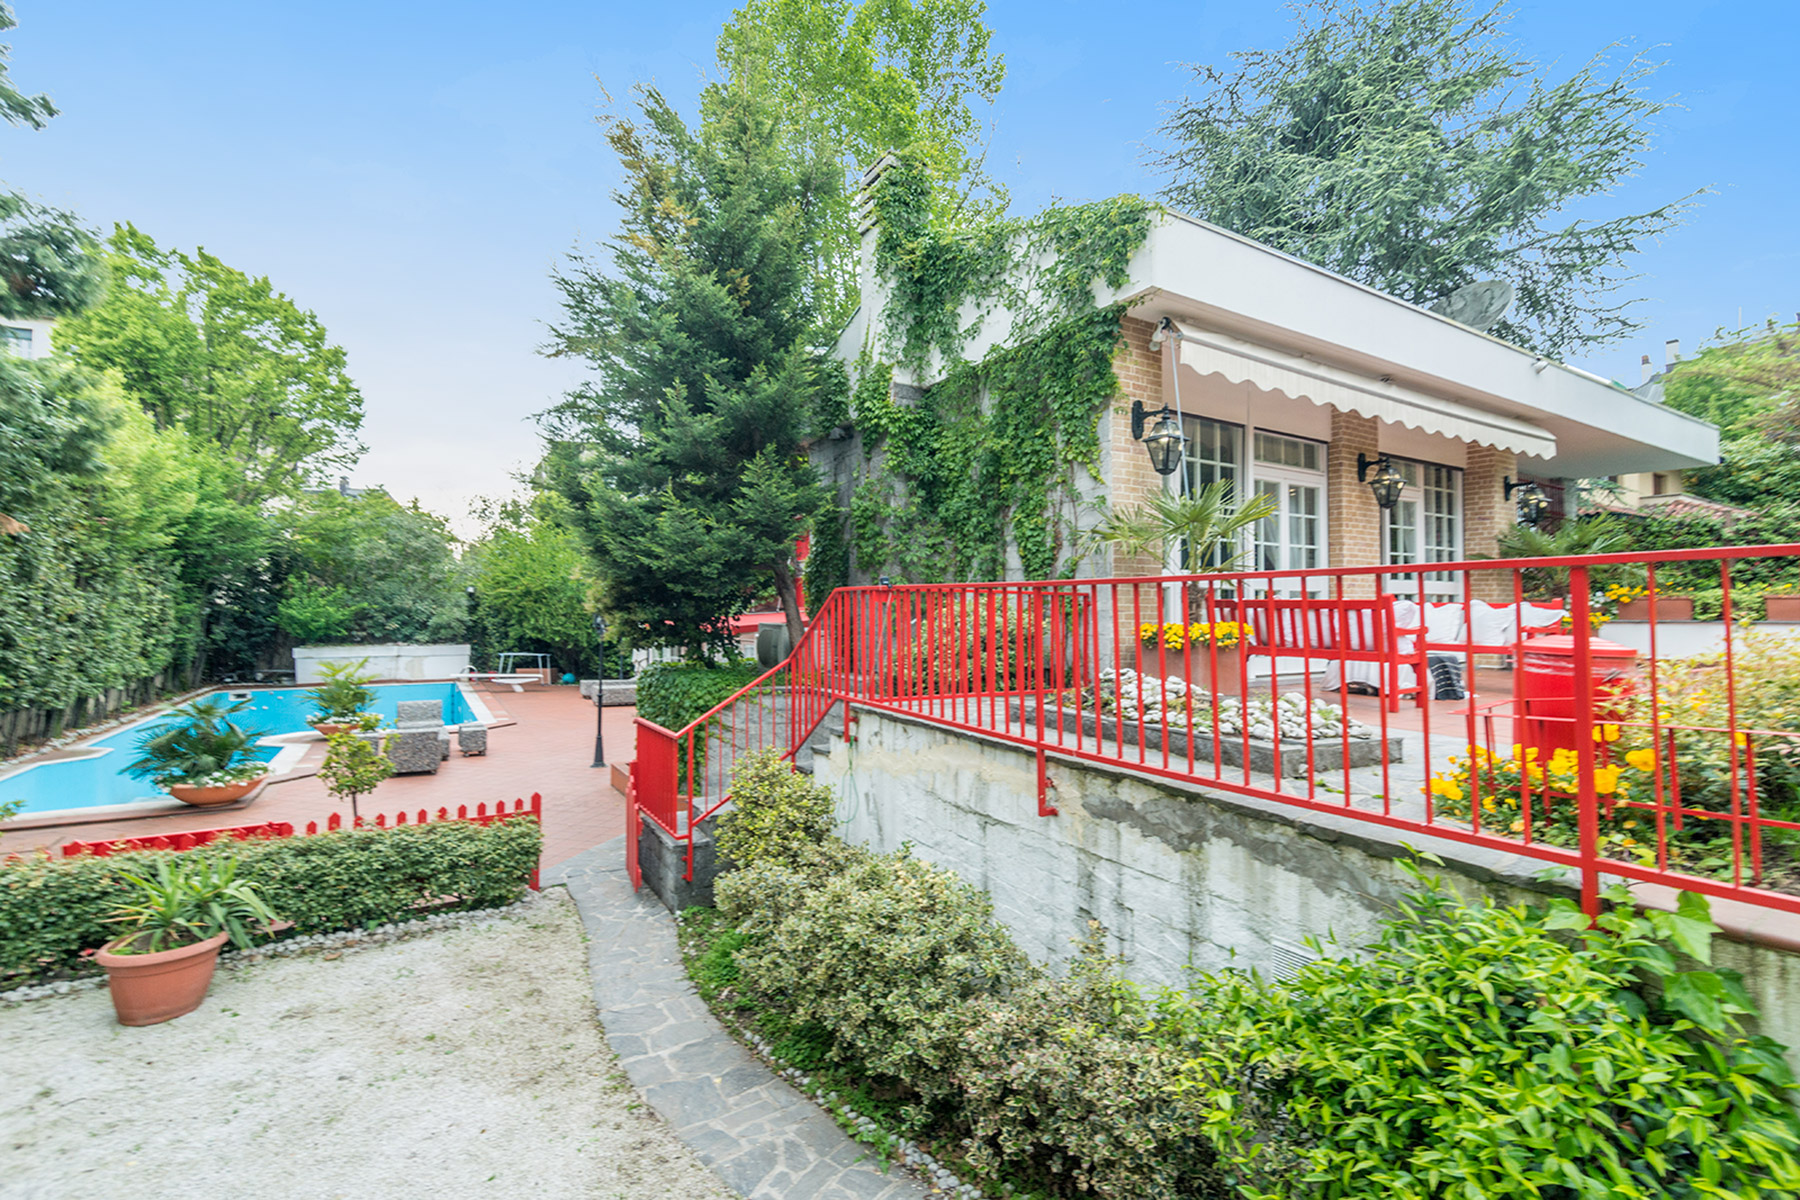 Additional photo for property listing at Refined villa with private garden and swimming pool Via Palatino Milano, Milan 20100 Italia